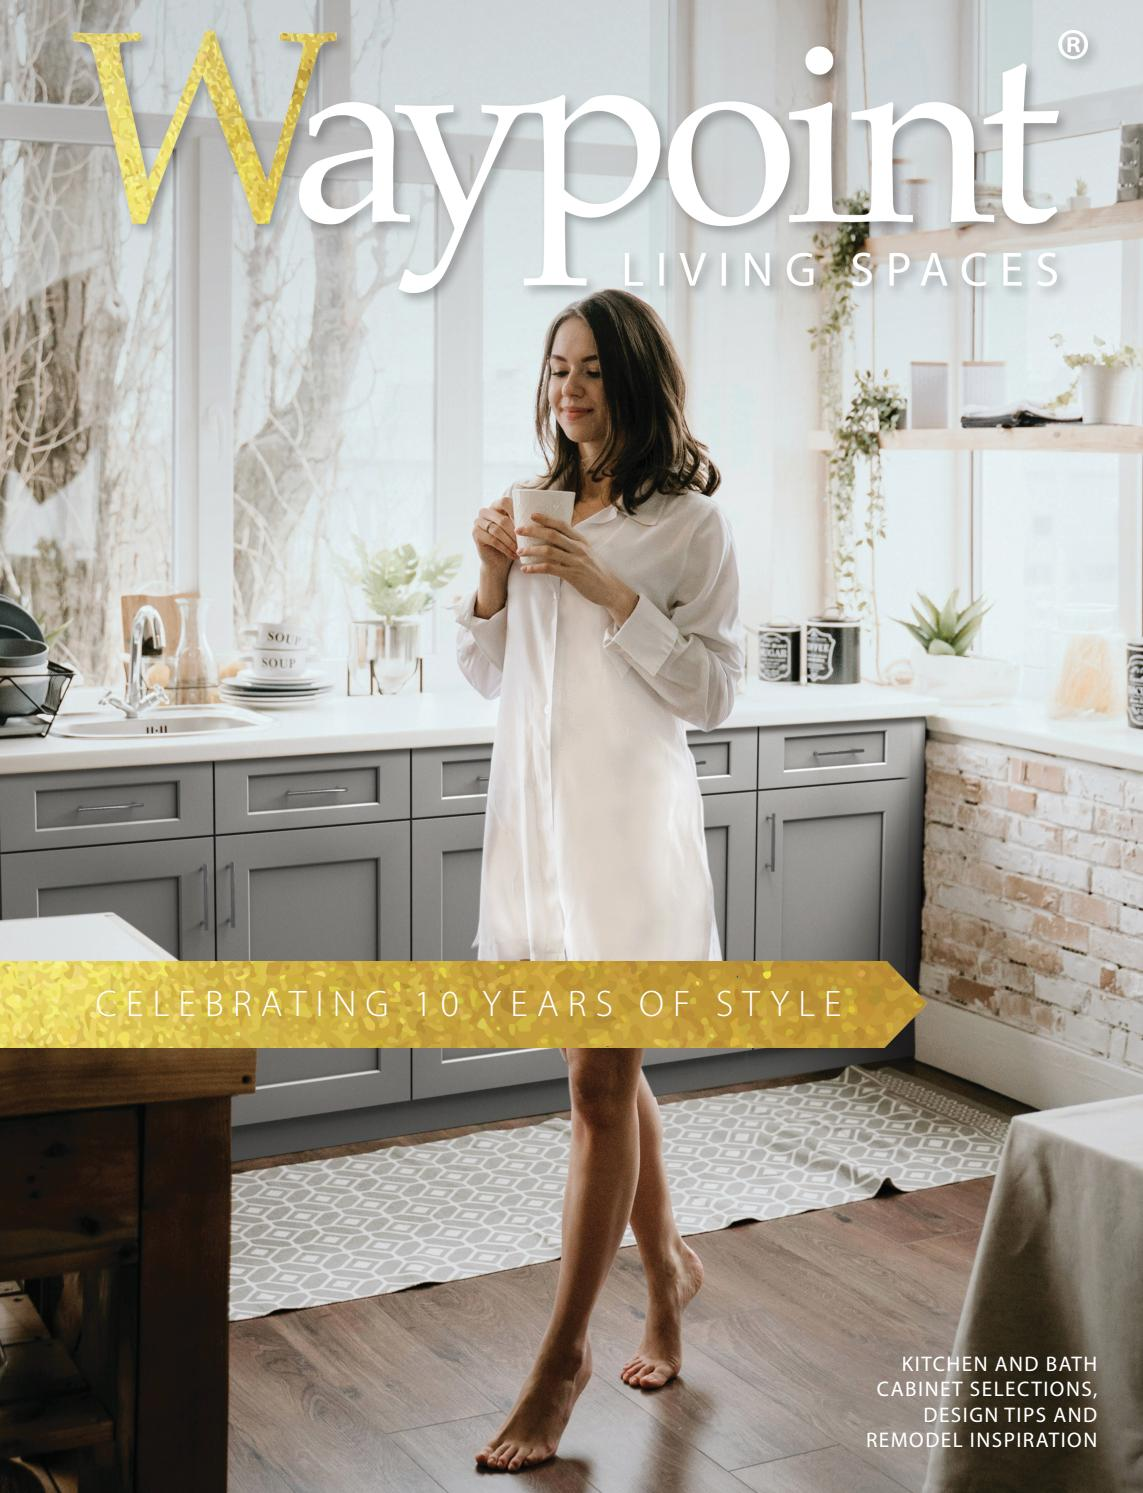 Waypoint Living Spaces Magazine Spring Summer 2020 By Waypointlivingspaces Issuu